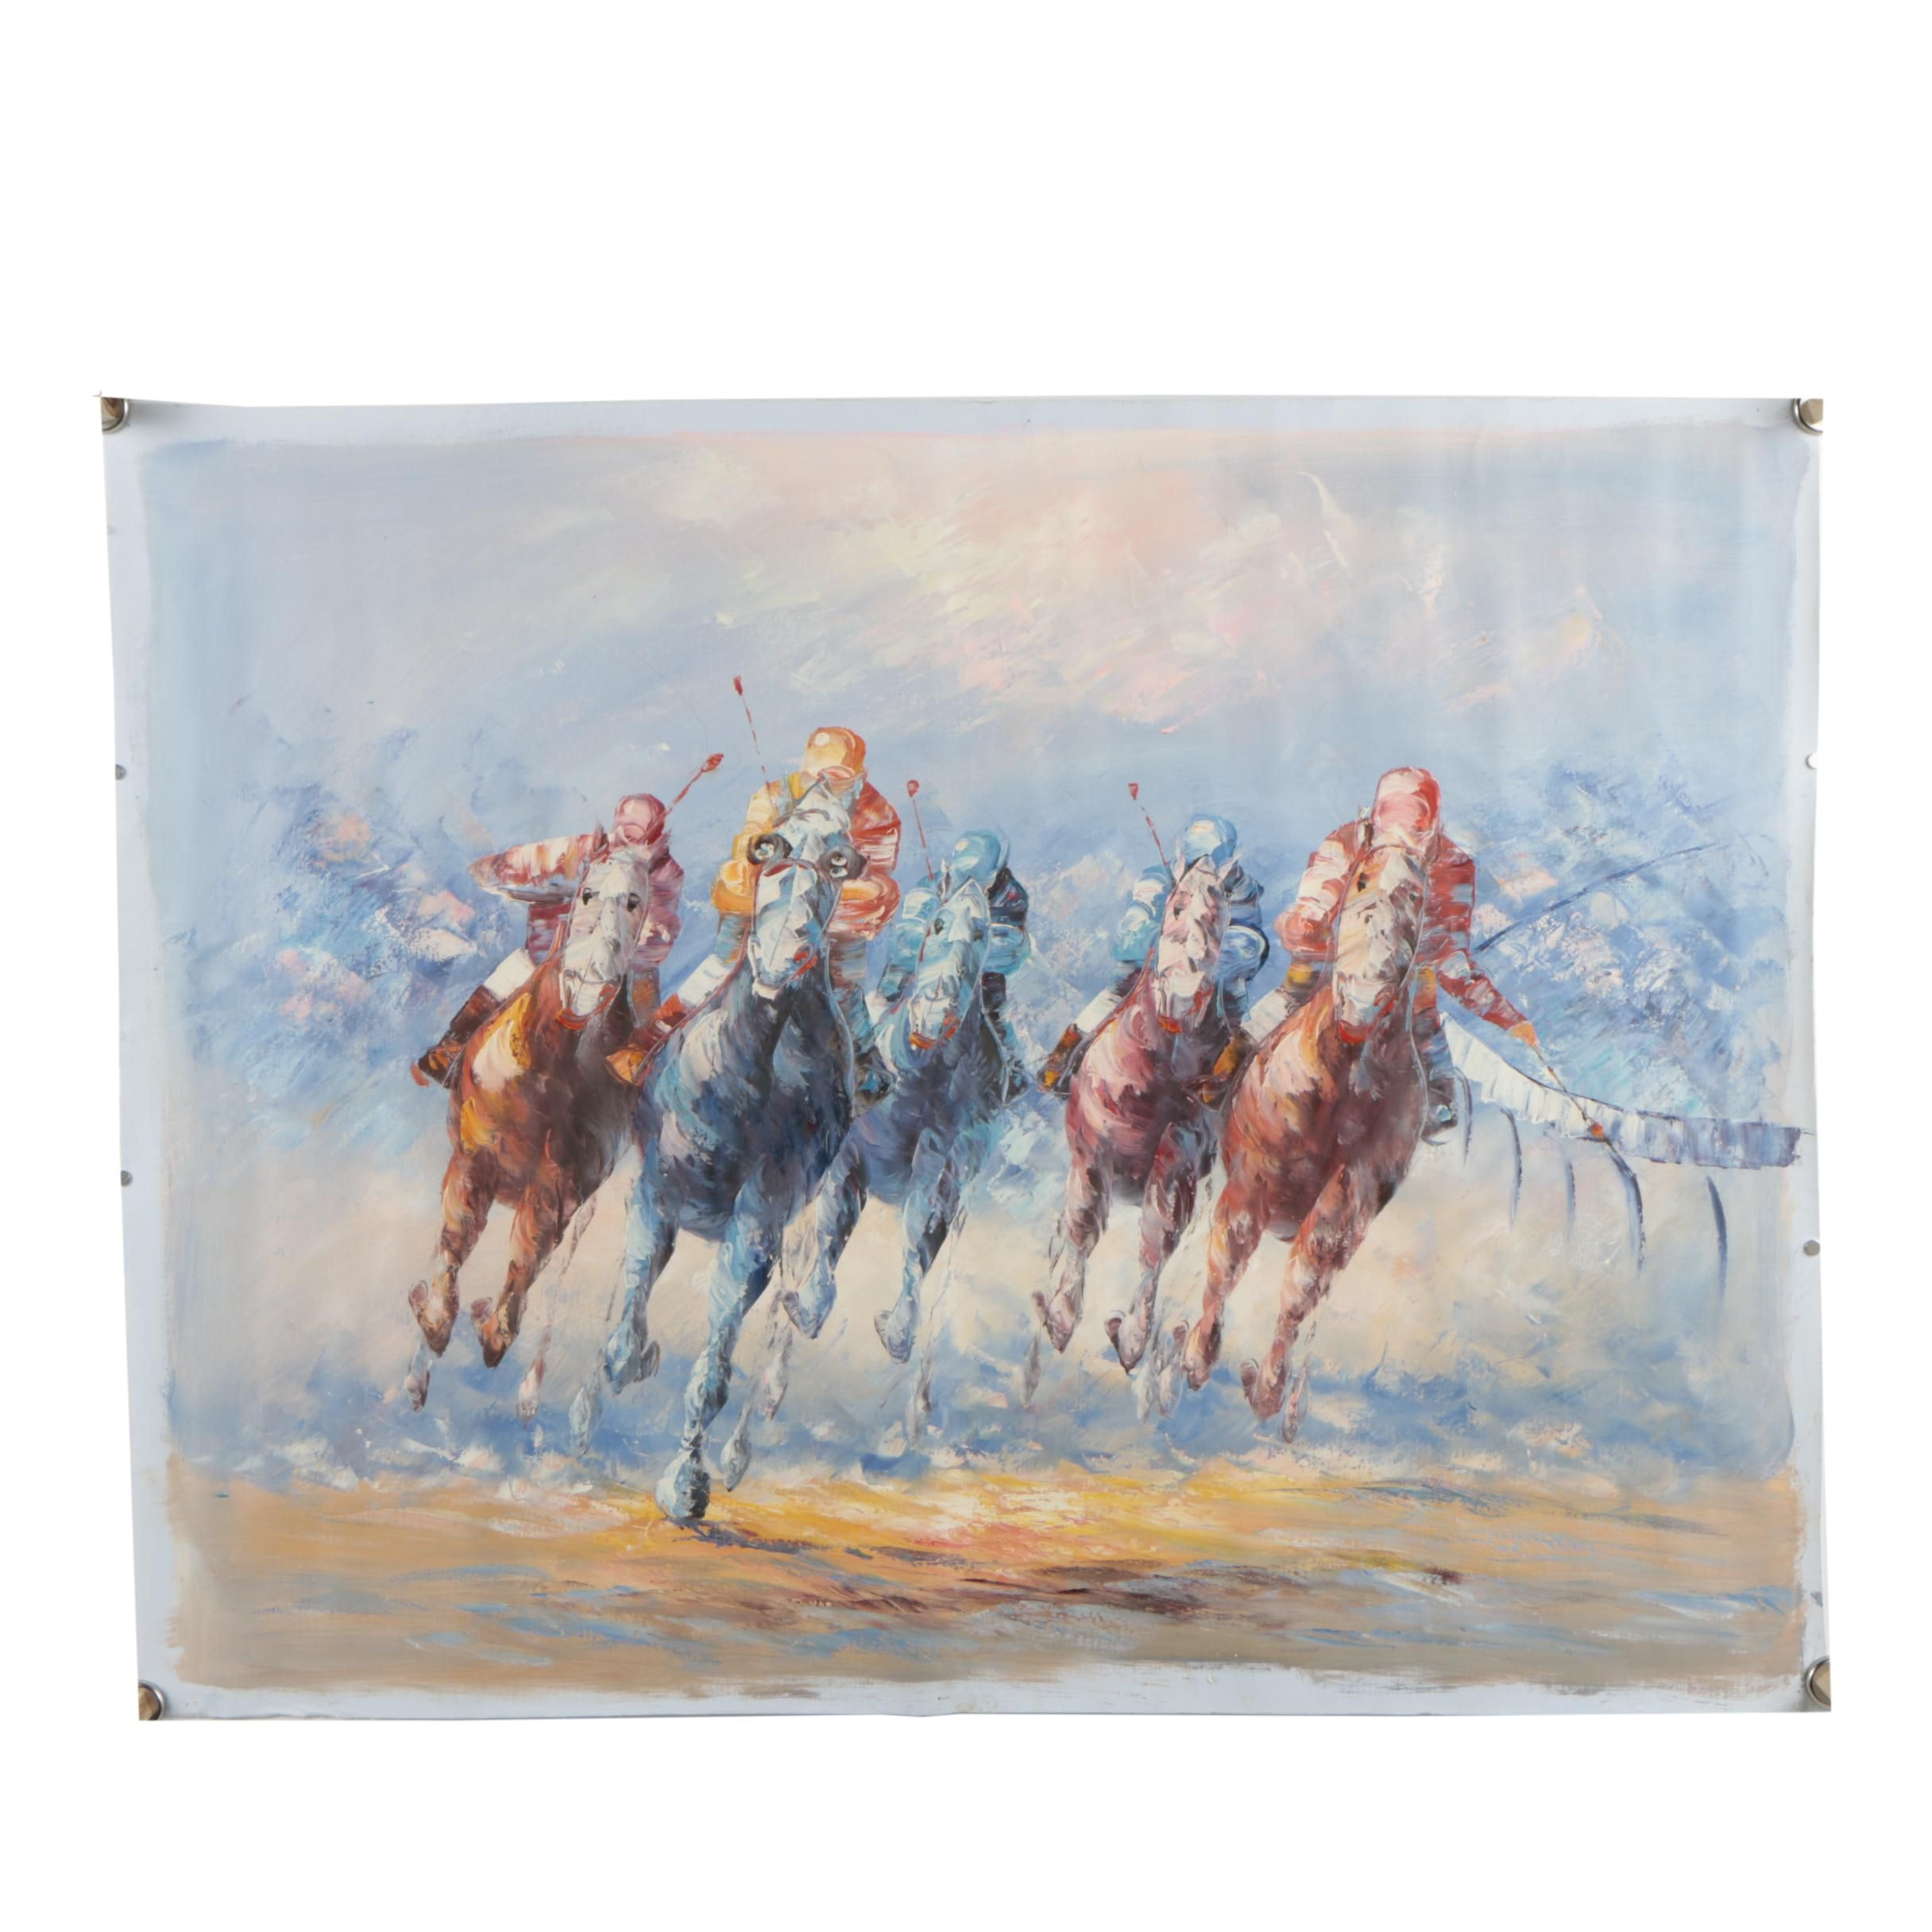 Oil on Canvas Painting of a Horse Race in the style of A. Vecchio